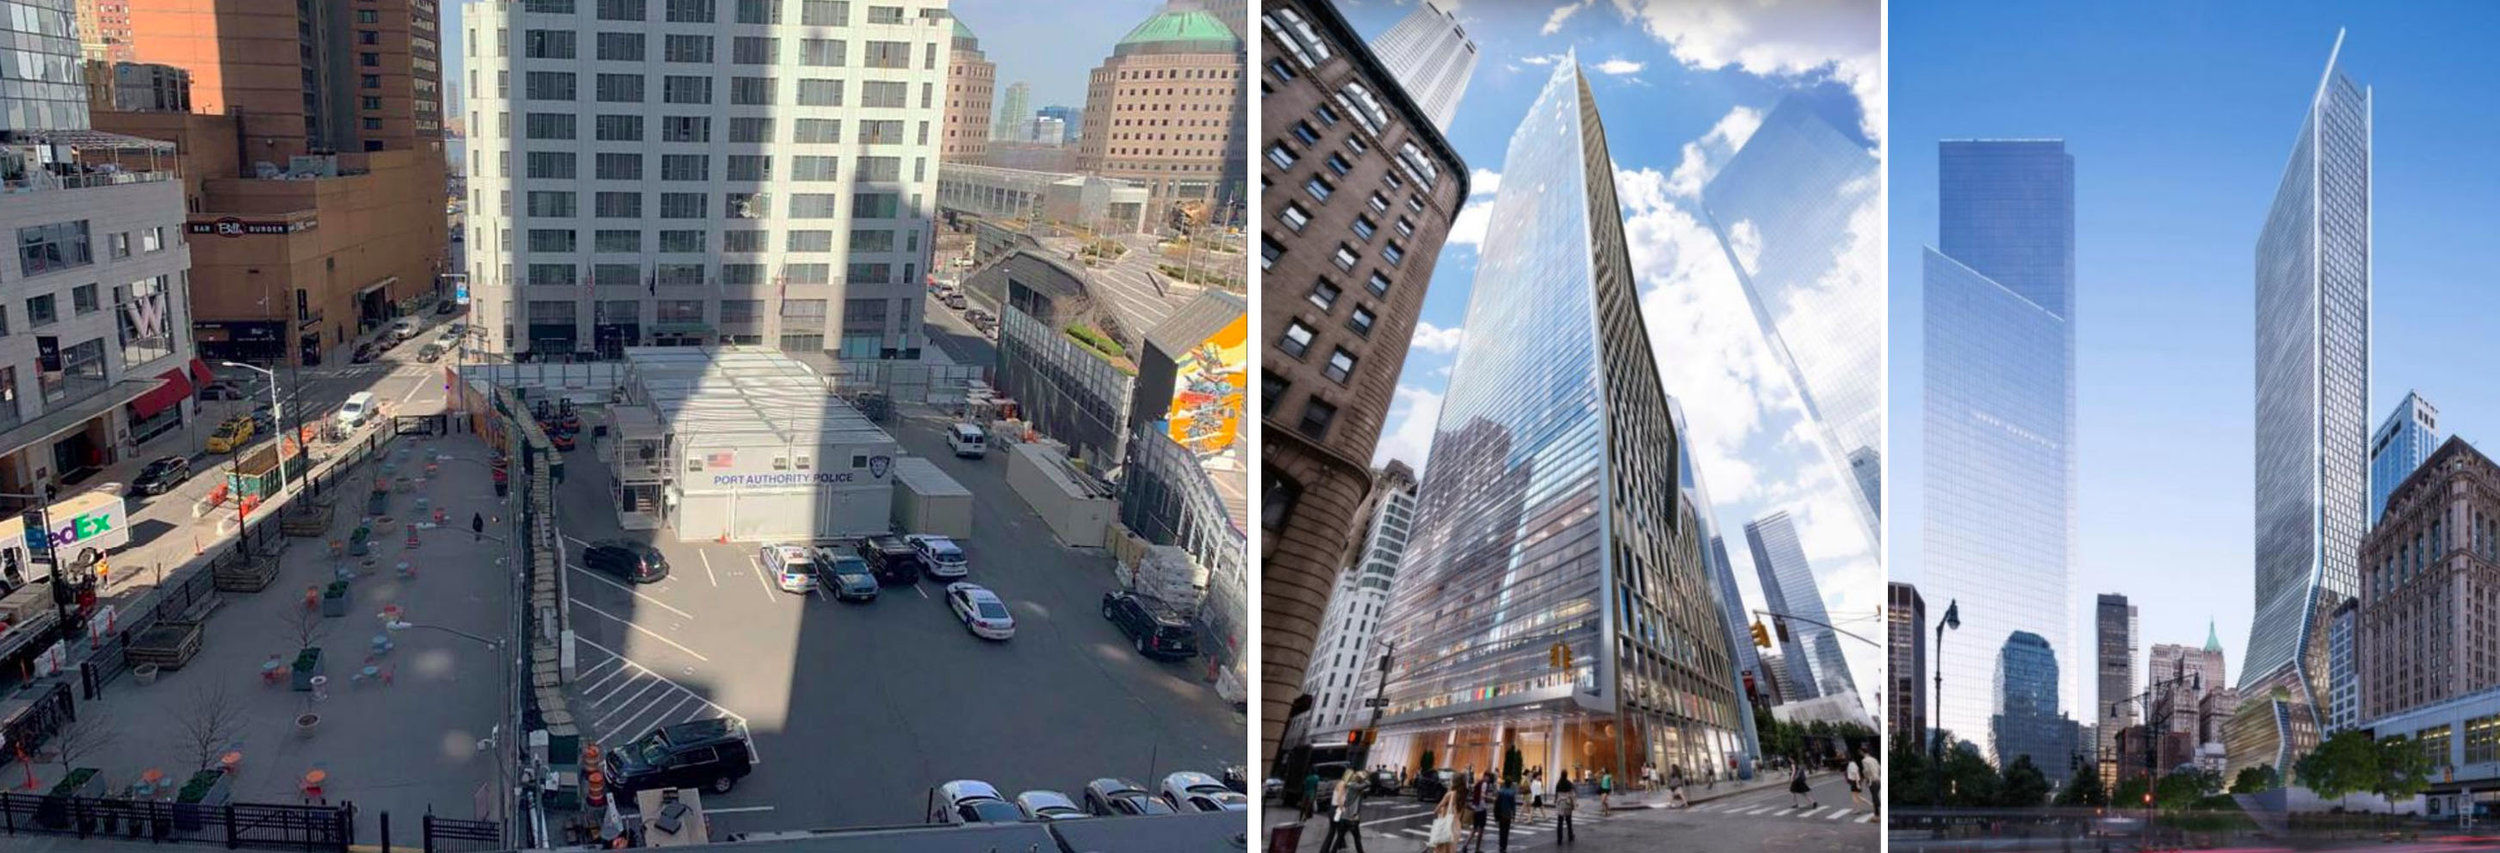 Left: Current conditions of the 5 WTC site from the 2019 RFP. Middle and right: 2014 KPF design for 5 WTC.